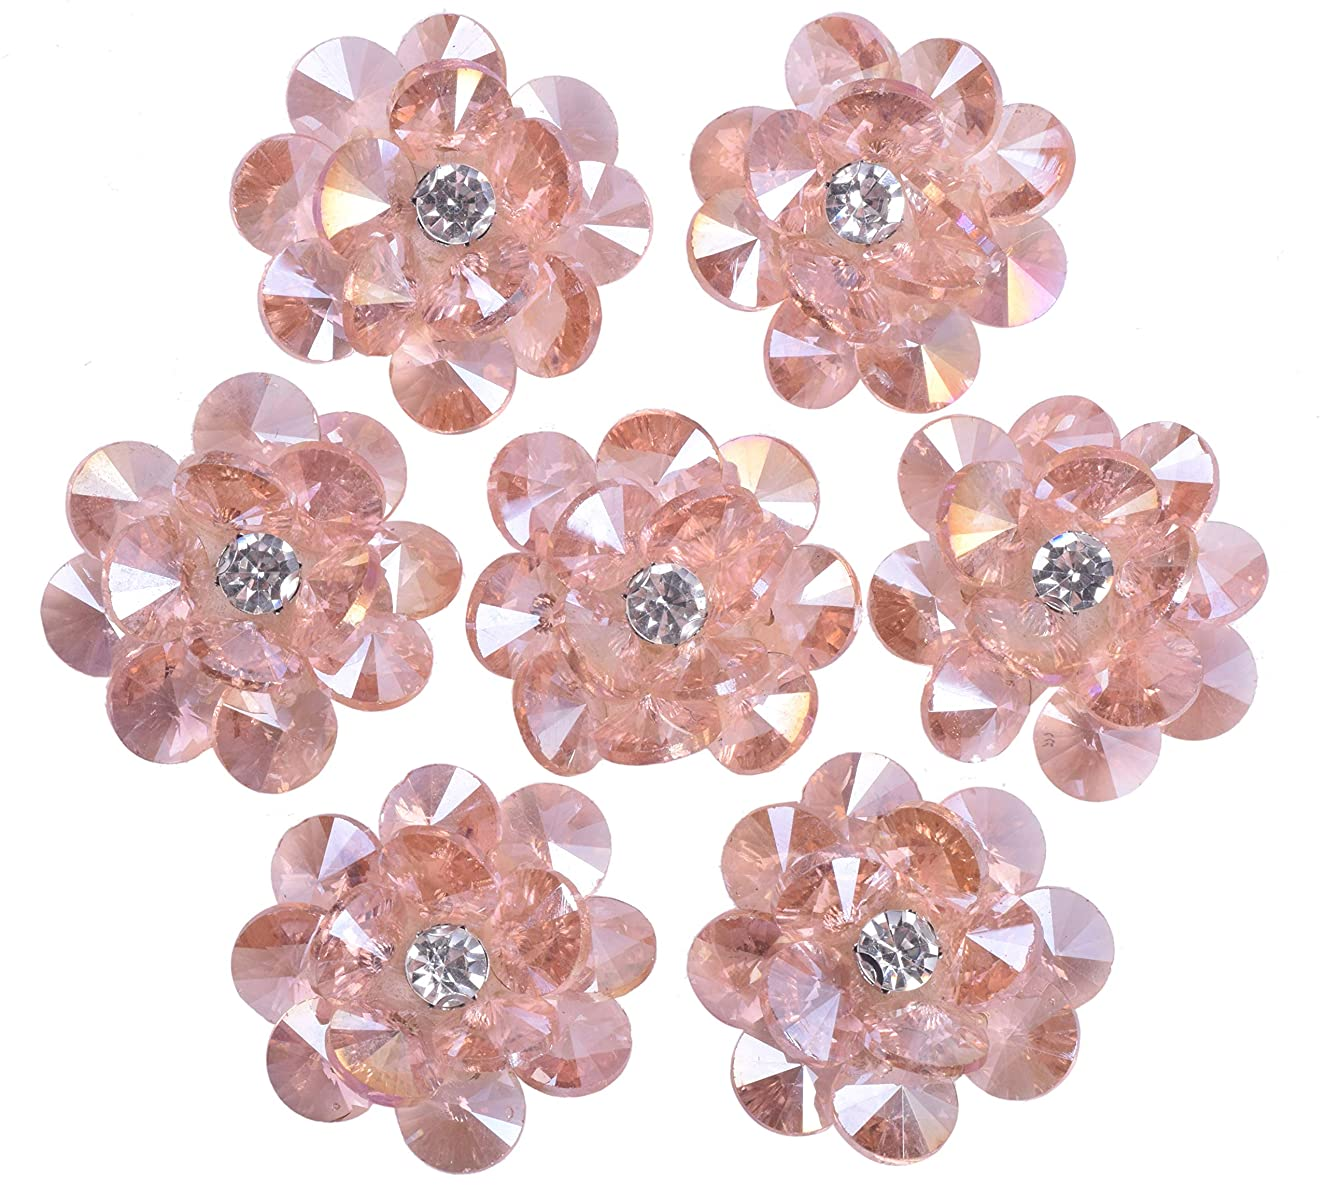 KAOYOO 10 Pcs Flowers Crystal Beads Accessories Sew on Shoes,Clothing,Hat(Light Rose)